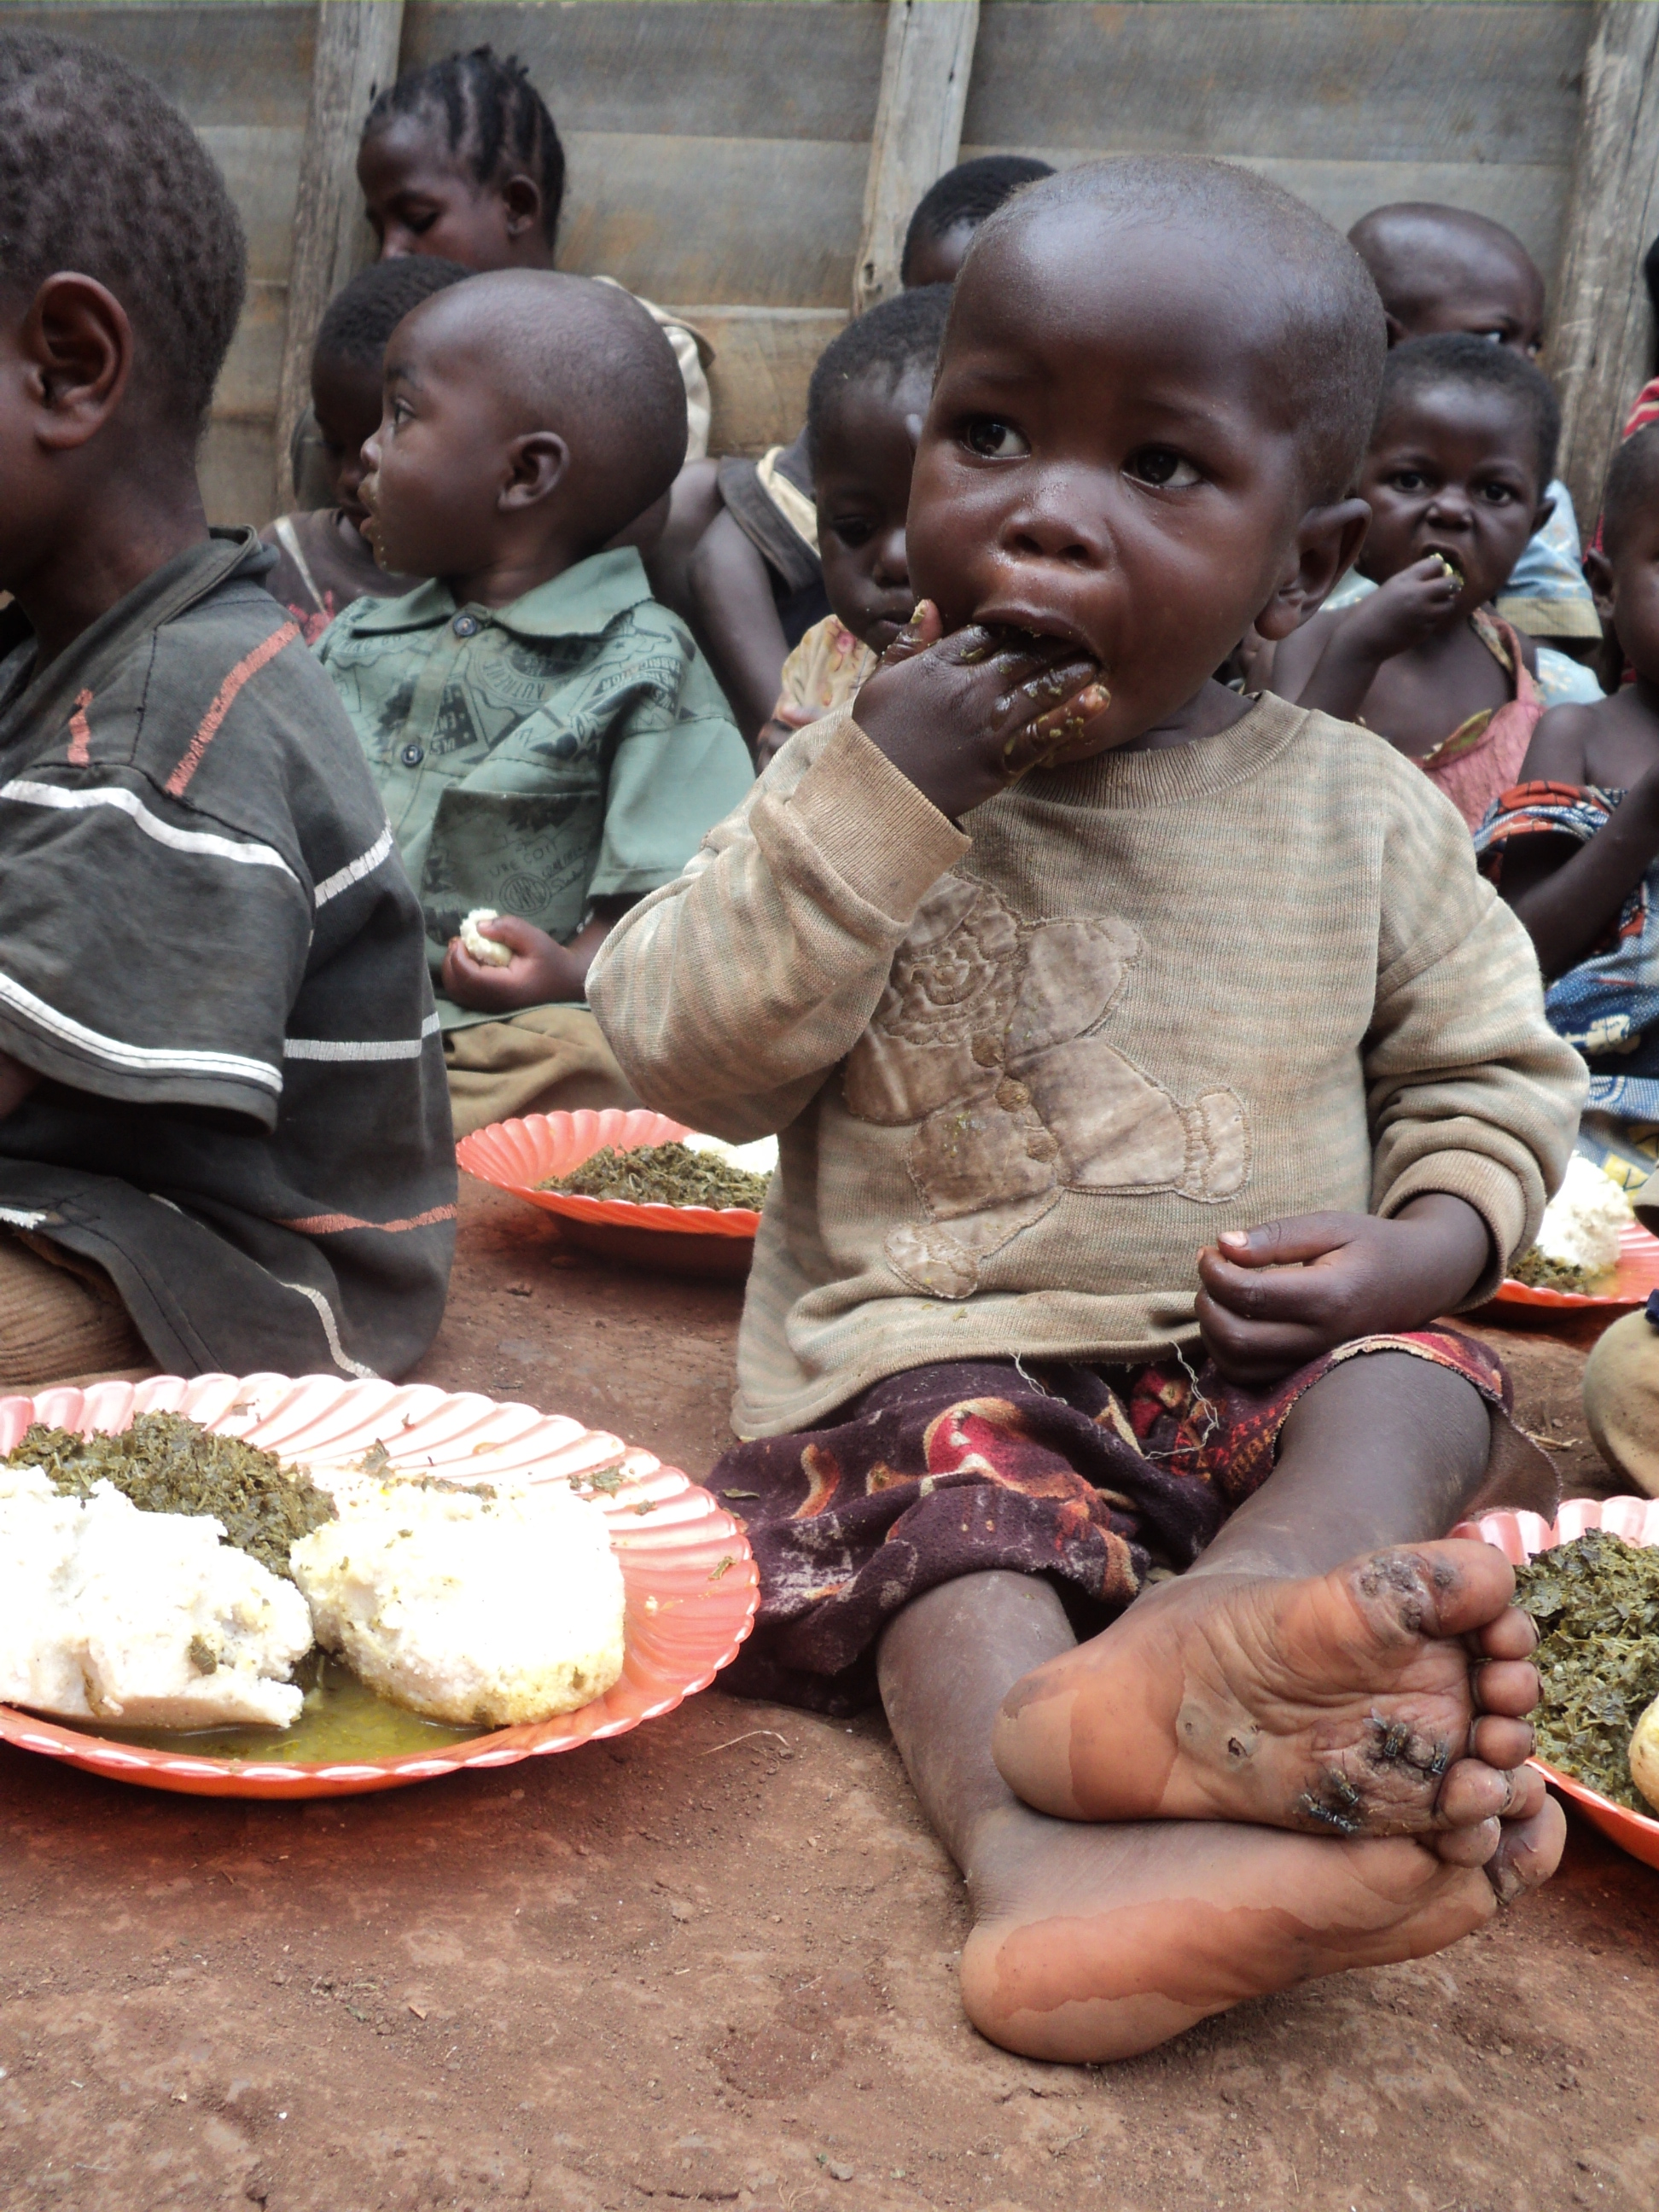 congo sores on feet infection shoes shoe feeding program home of hope homeofhope africa rwanda kenya drc